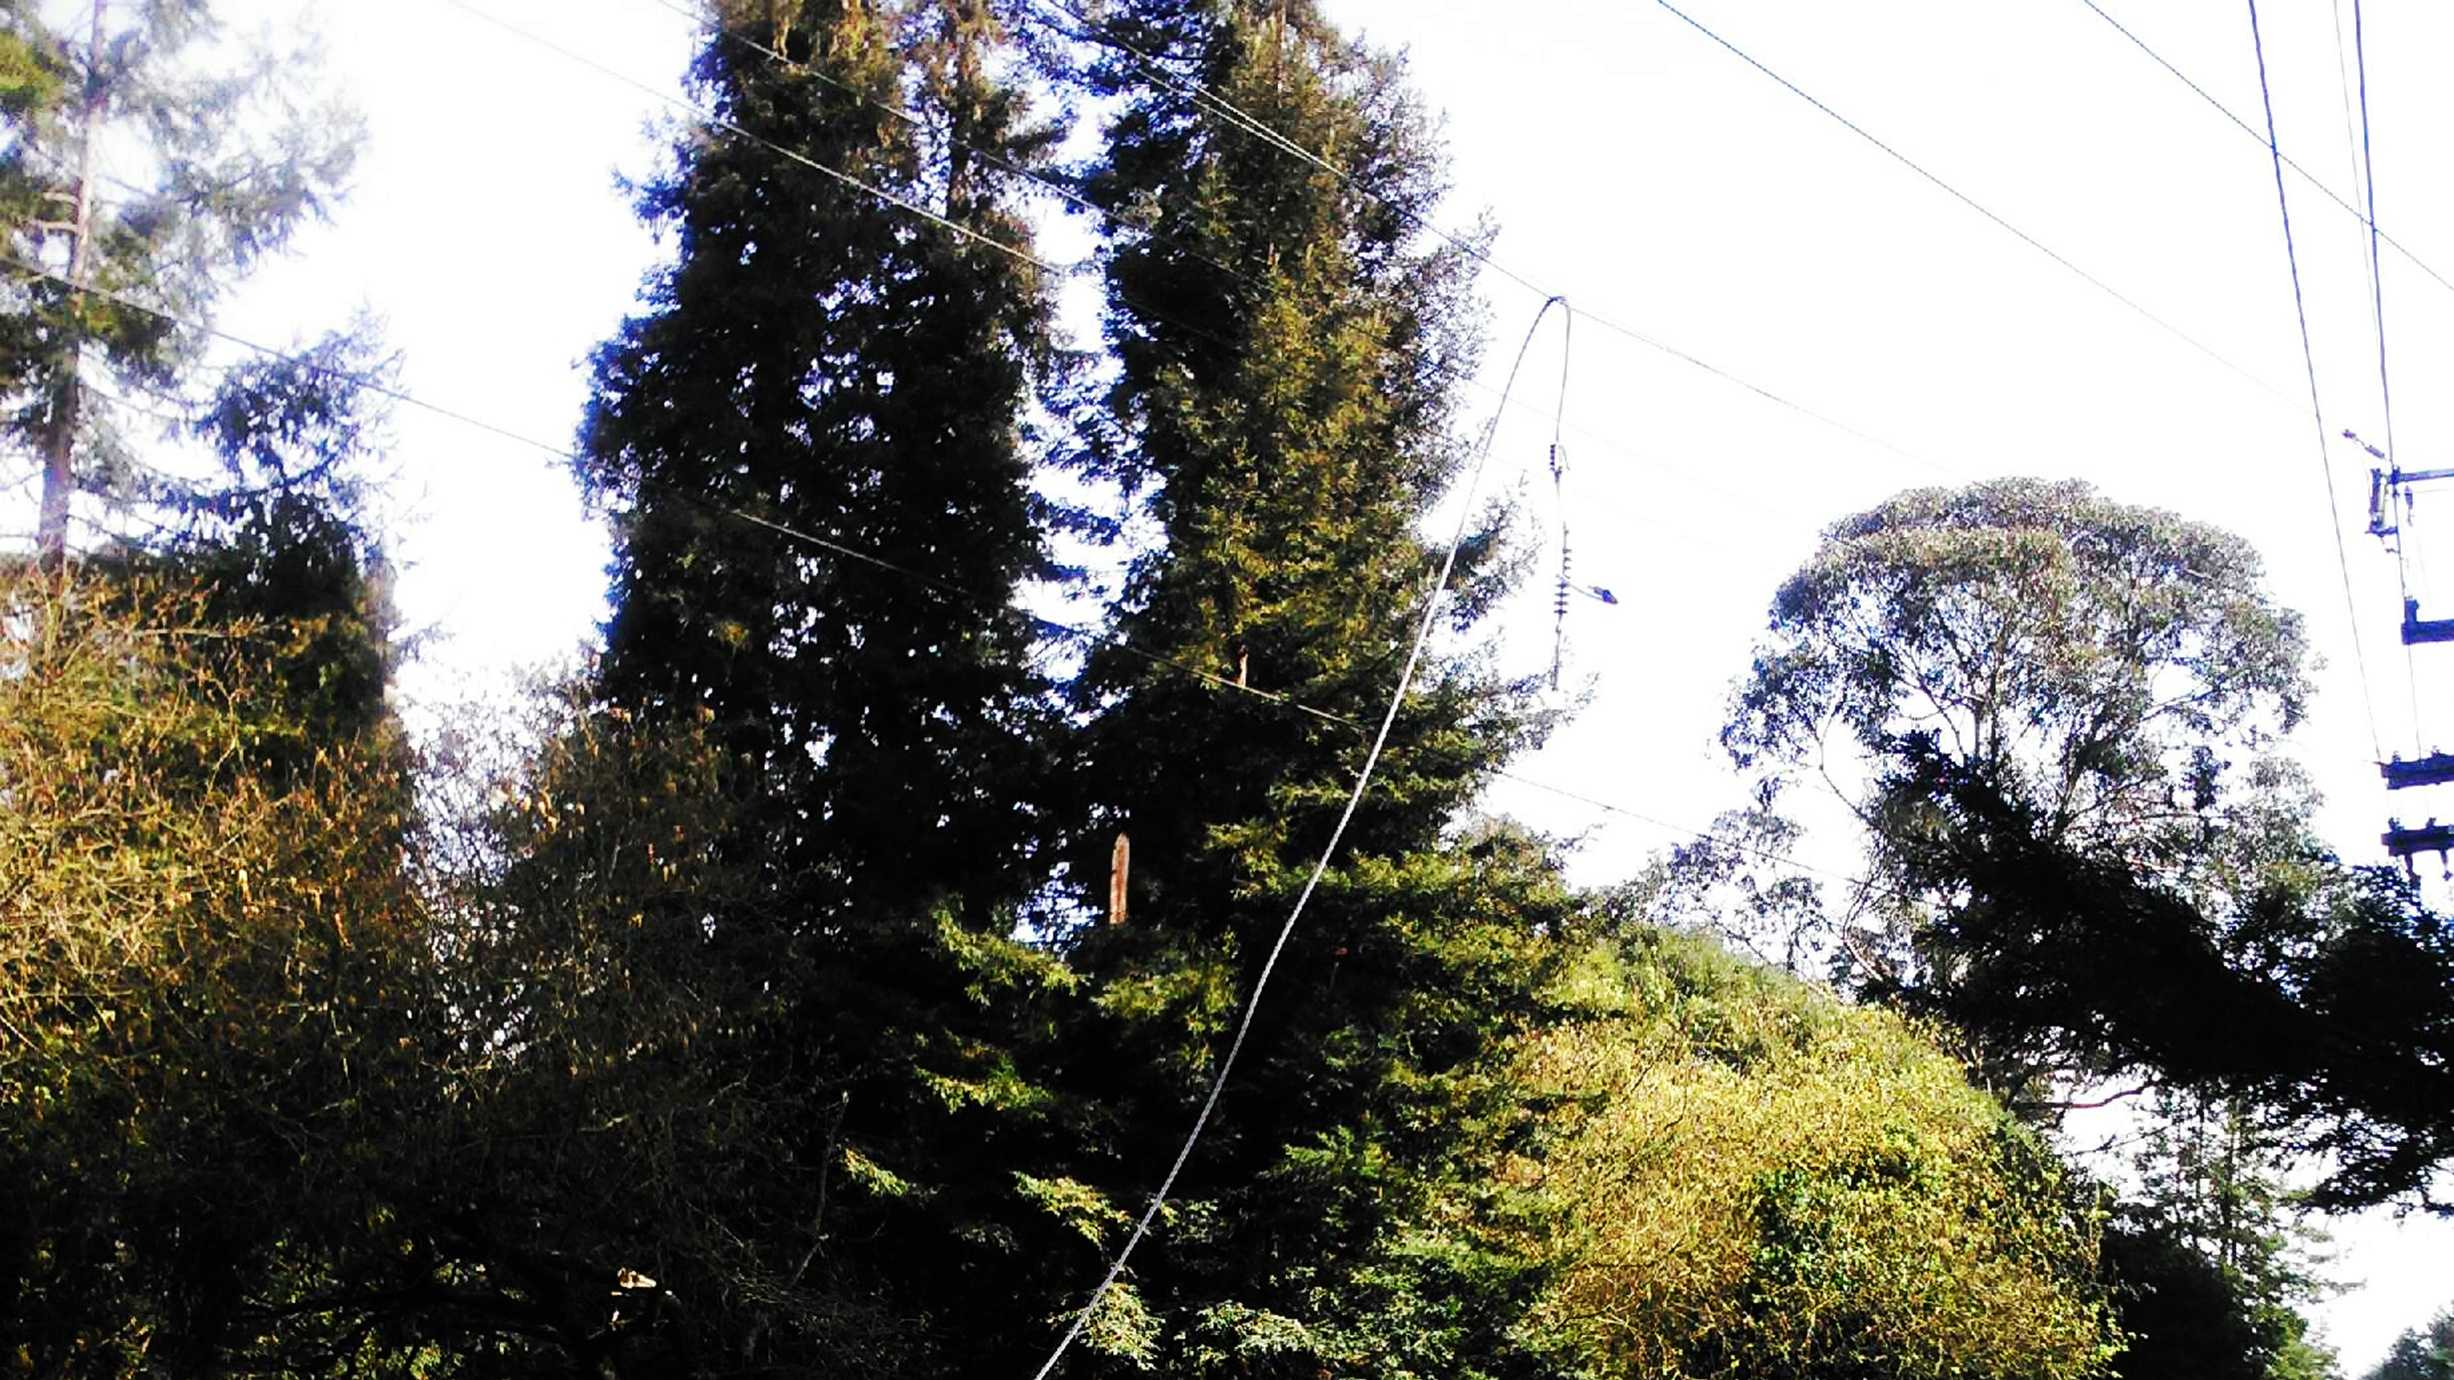 Powerlines were ripped down by a tree in Aptos. (March 7, 2014)